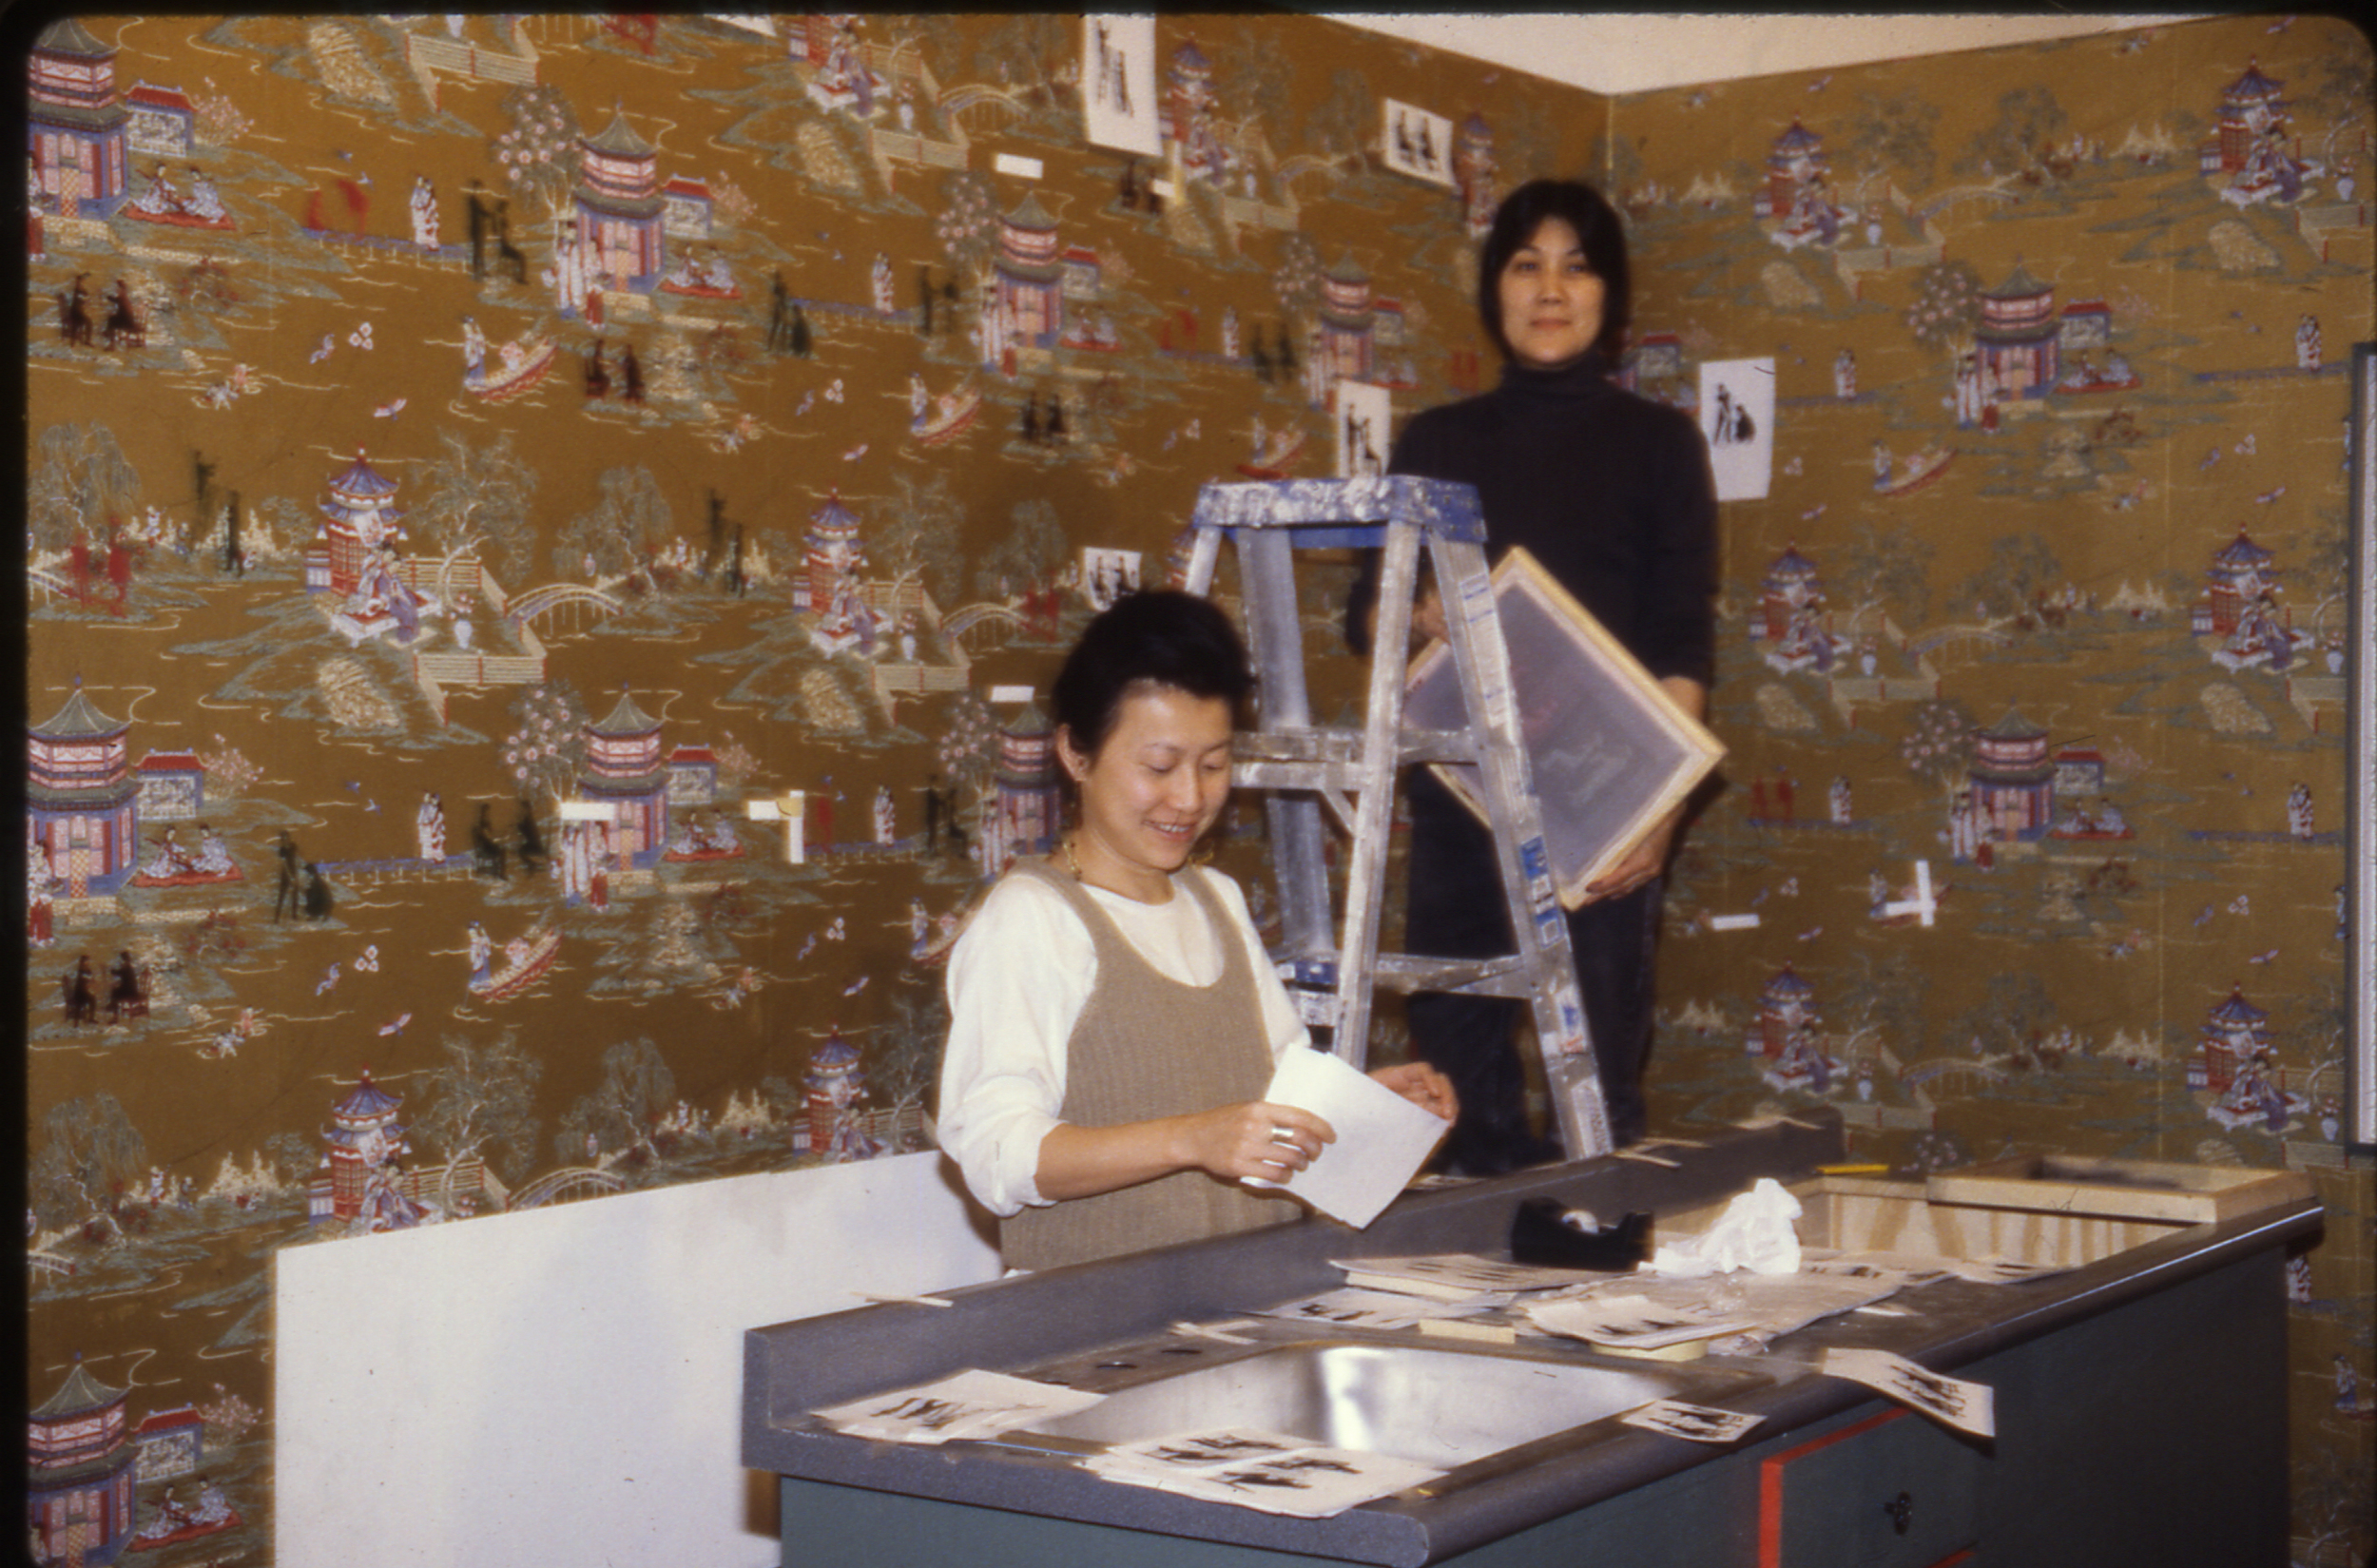 Collaborating with Millie Chen for 'Kitchen' at Art in General